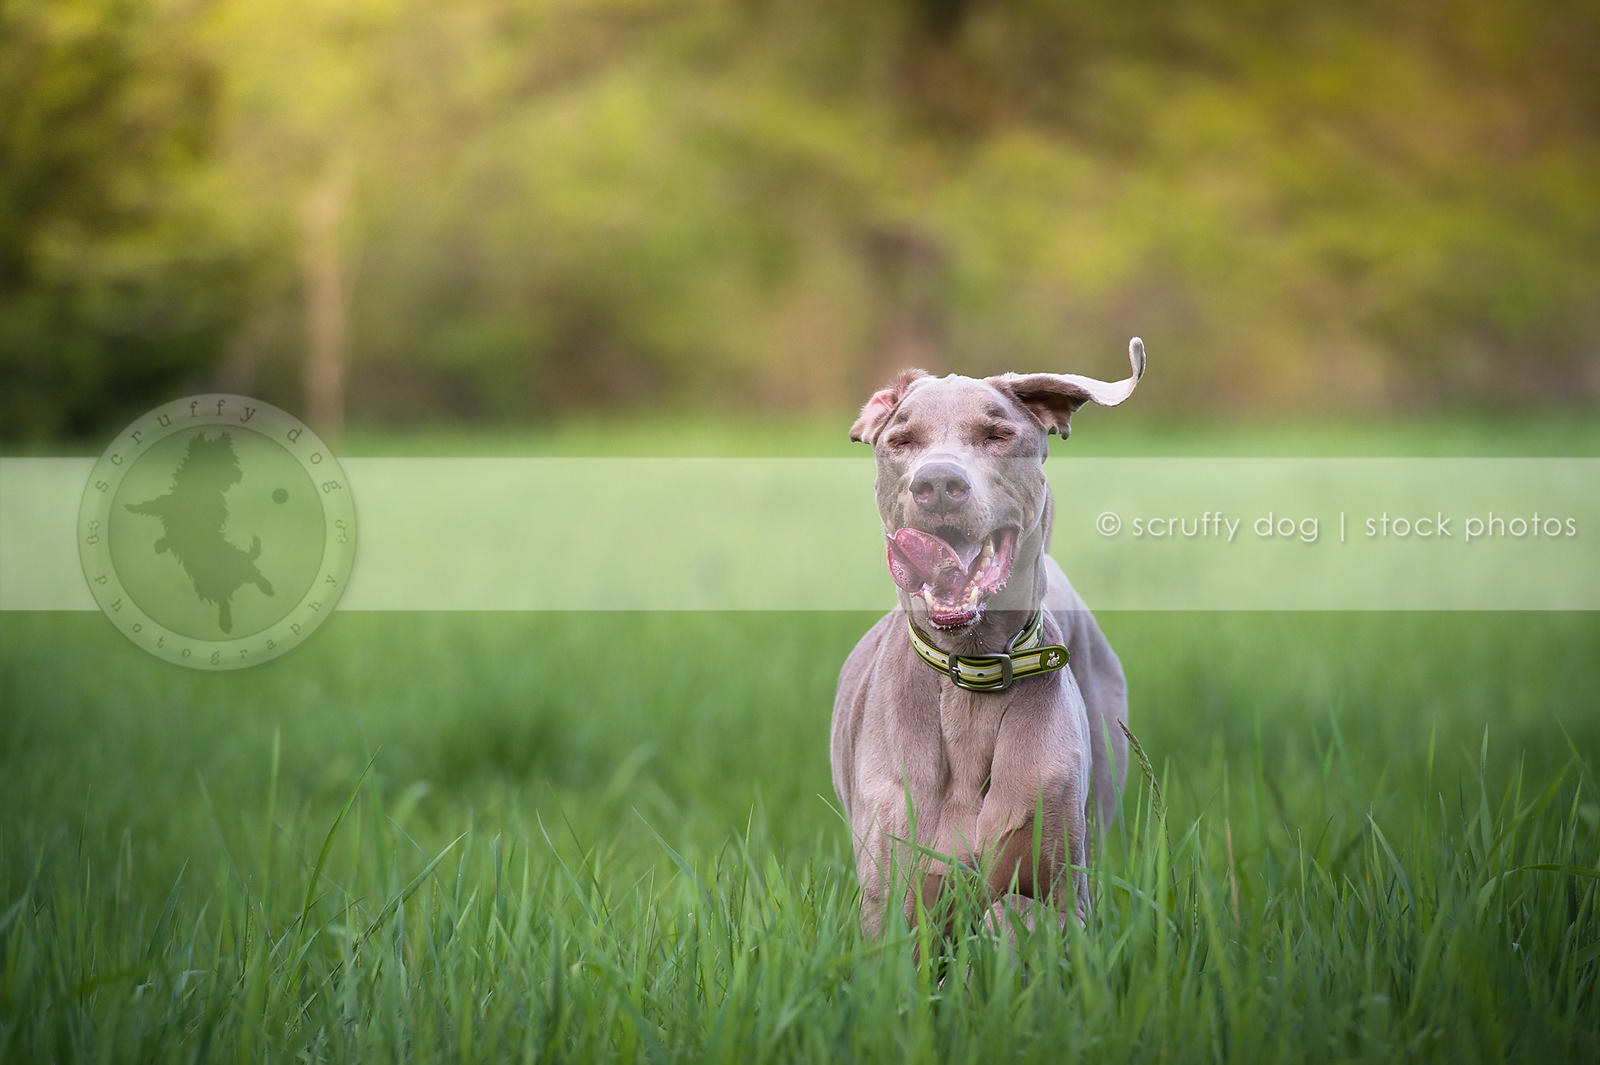 joyful dog with eyes closed walking in summer meadow